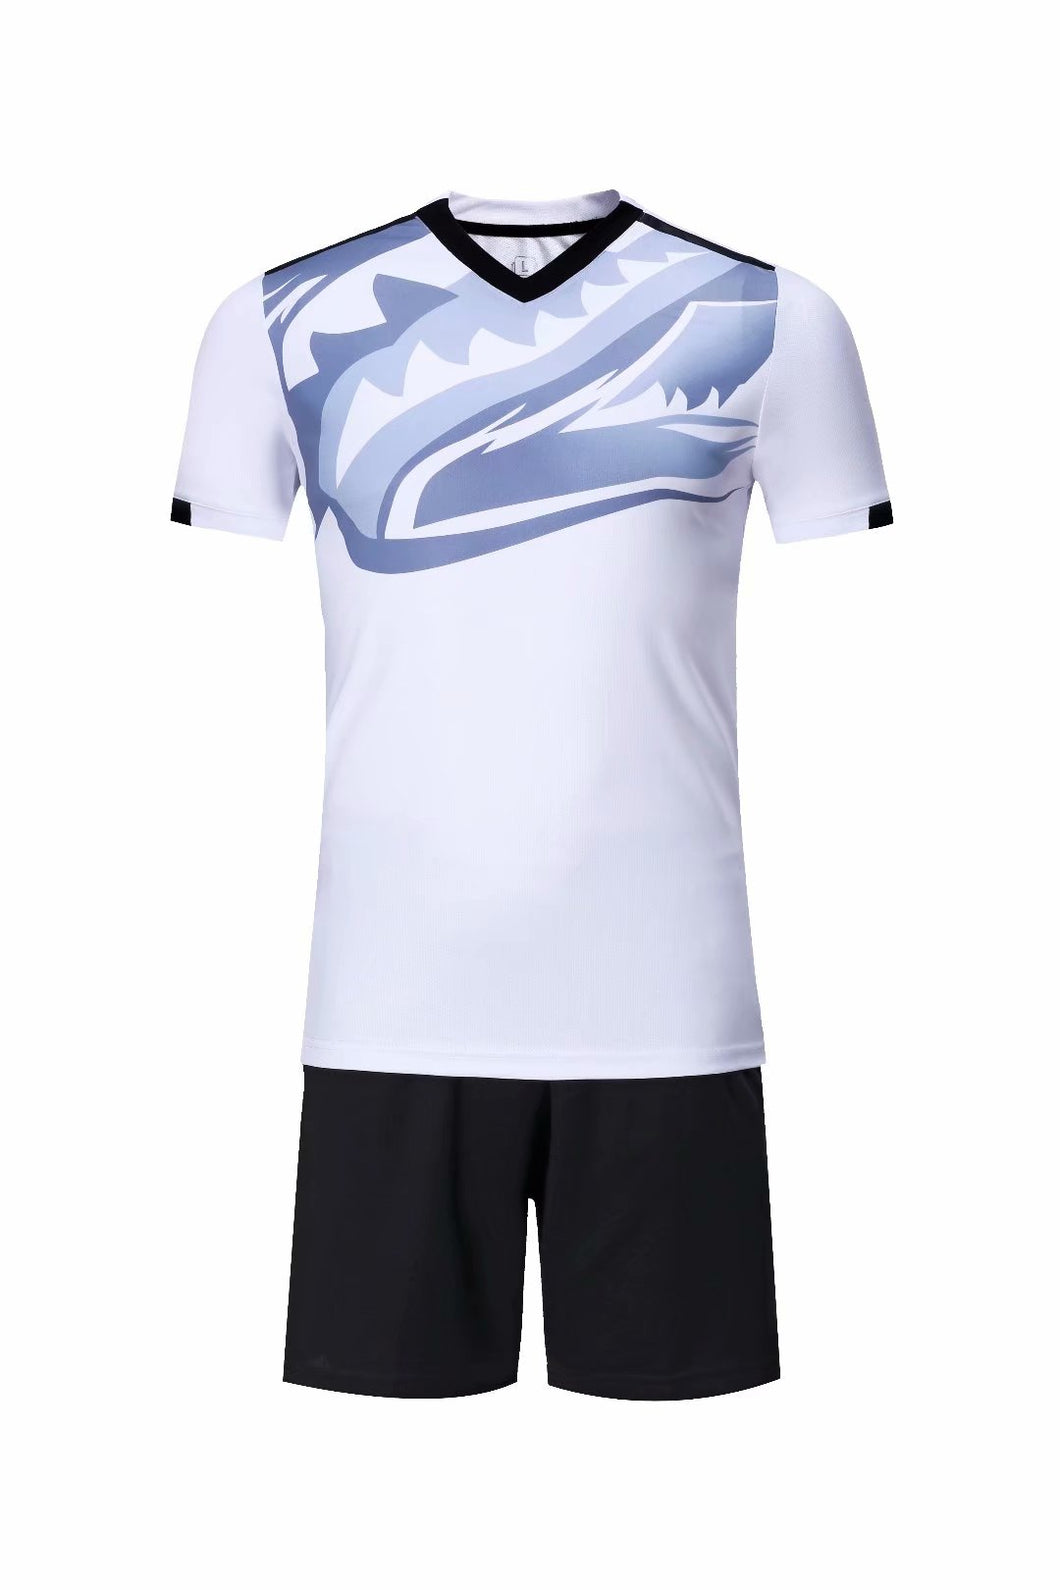 Full Football Kit - White with Royal Blue Graphic Print and Black Shorts.